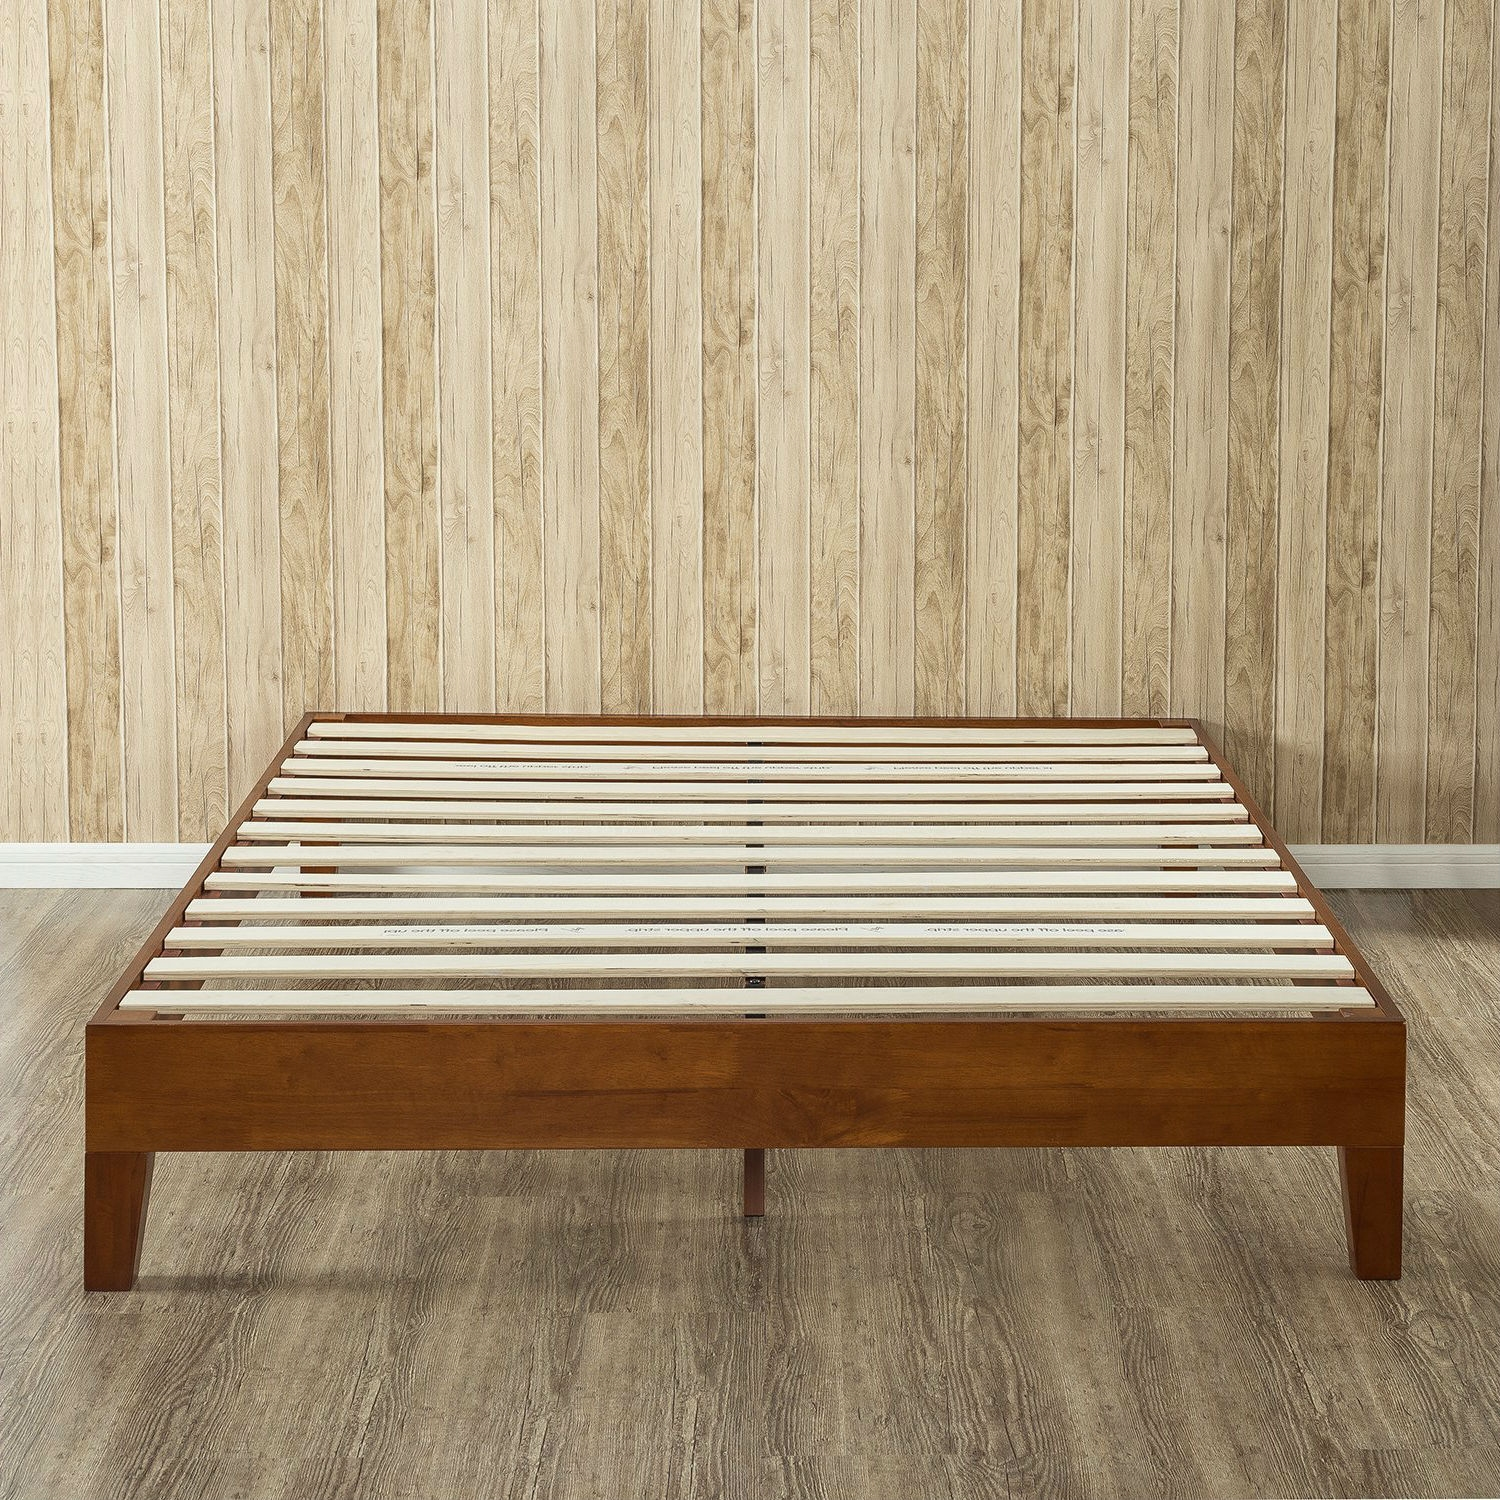 queen size solid wood low profile platform bed frame in cherry finish - Solid Platform Bed Frame